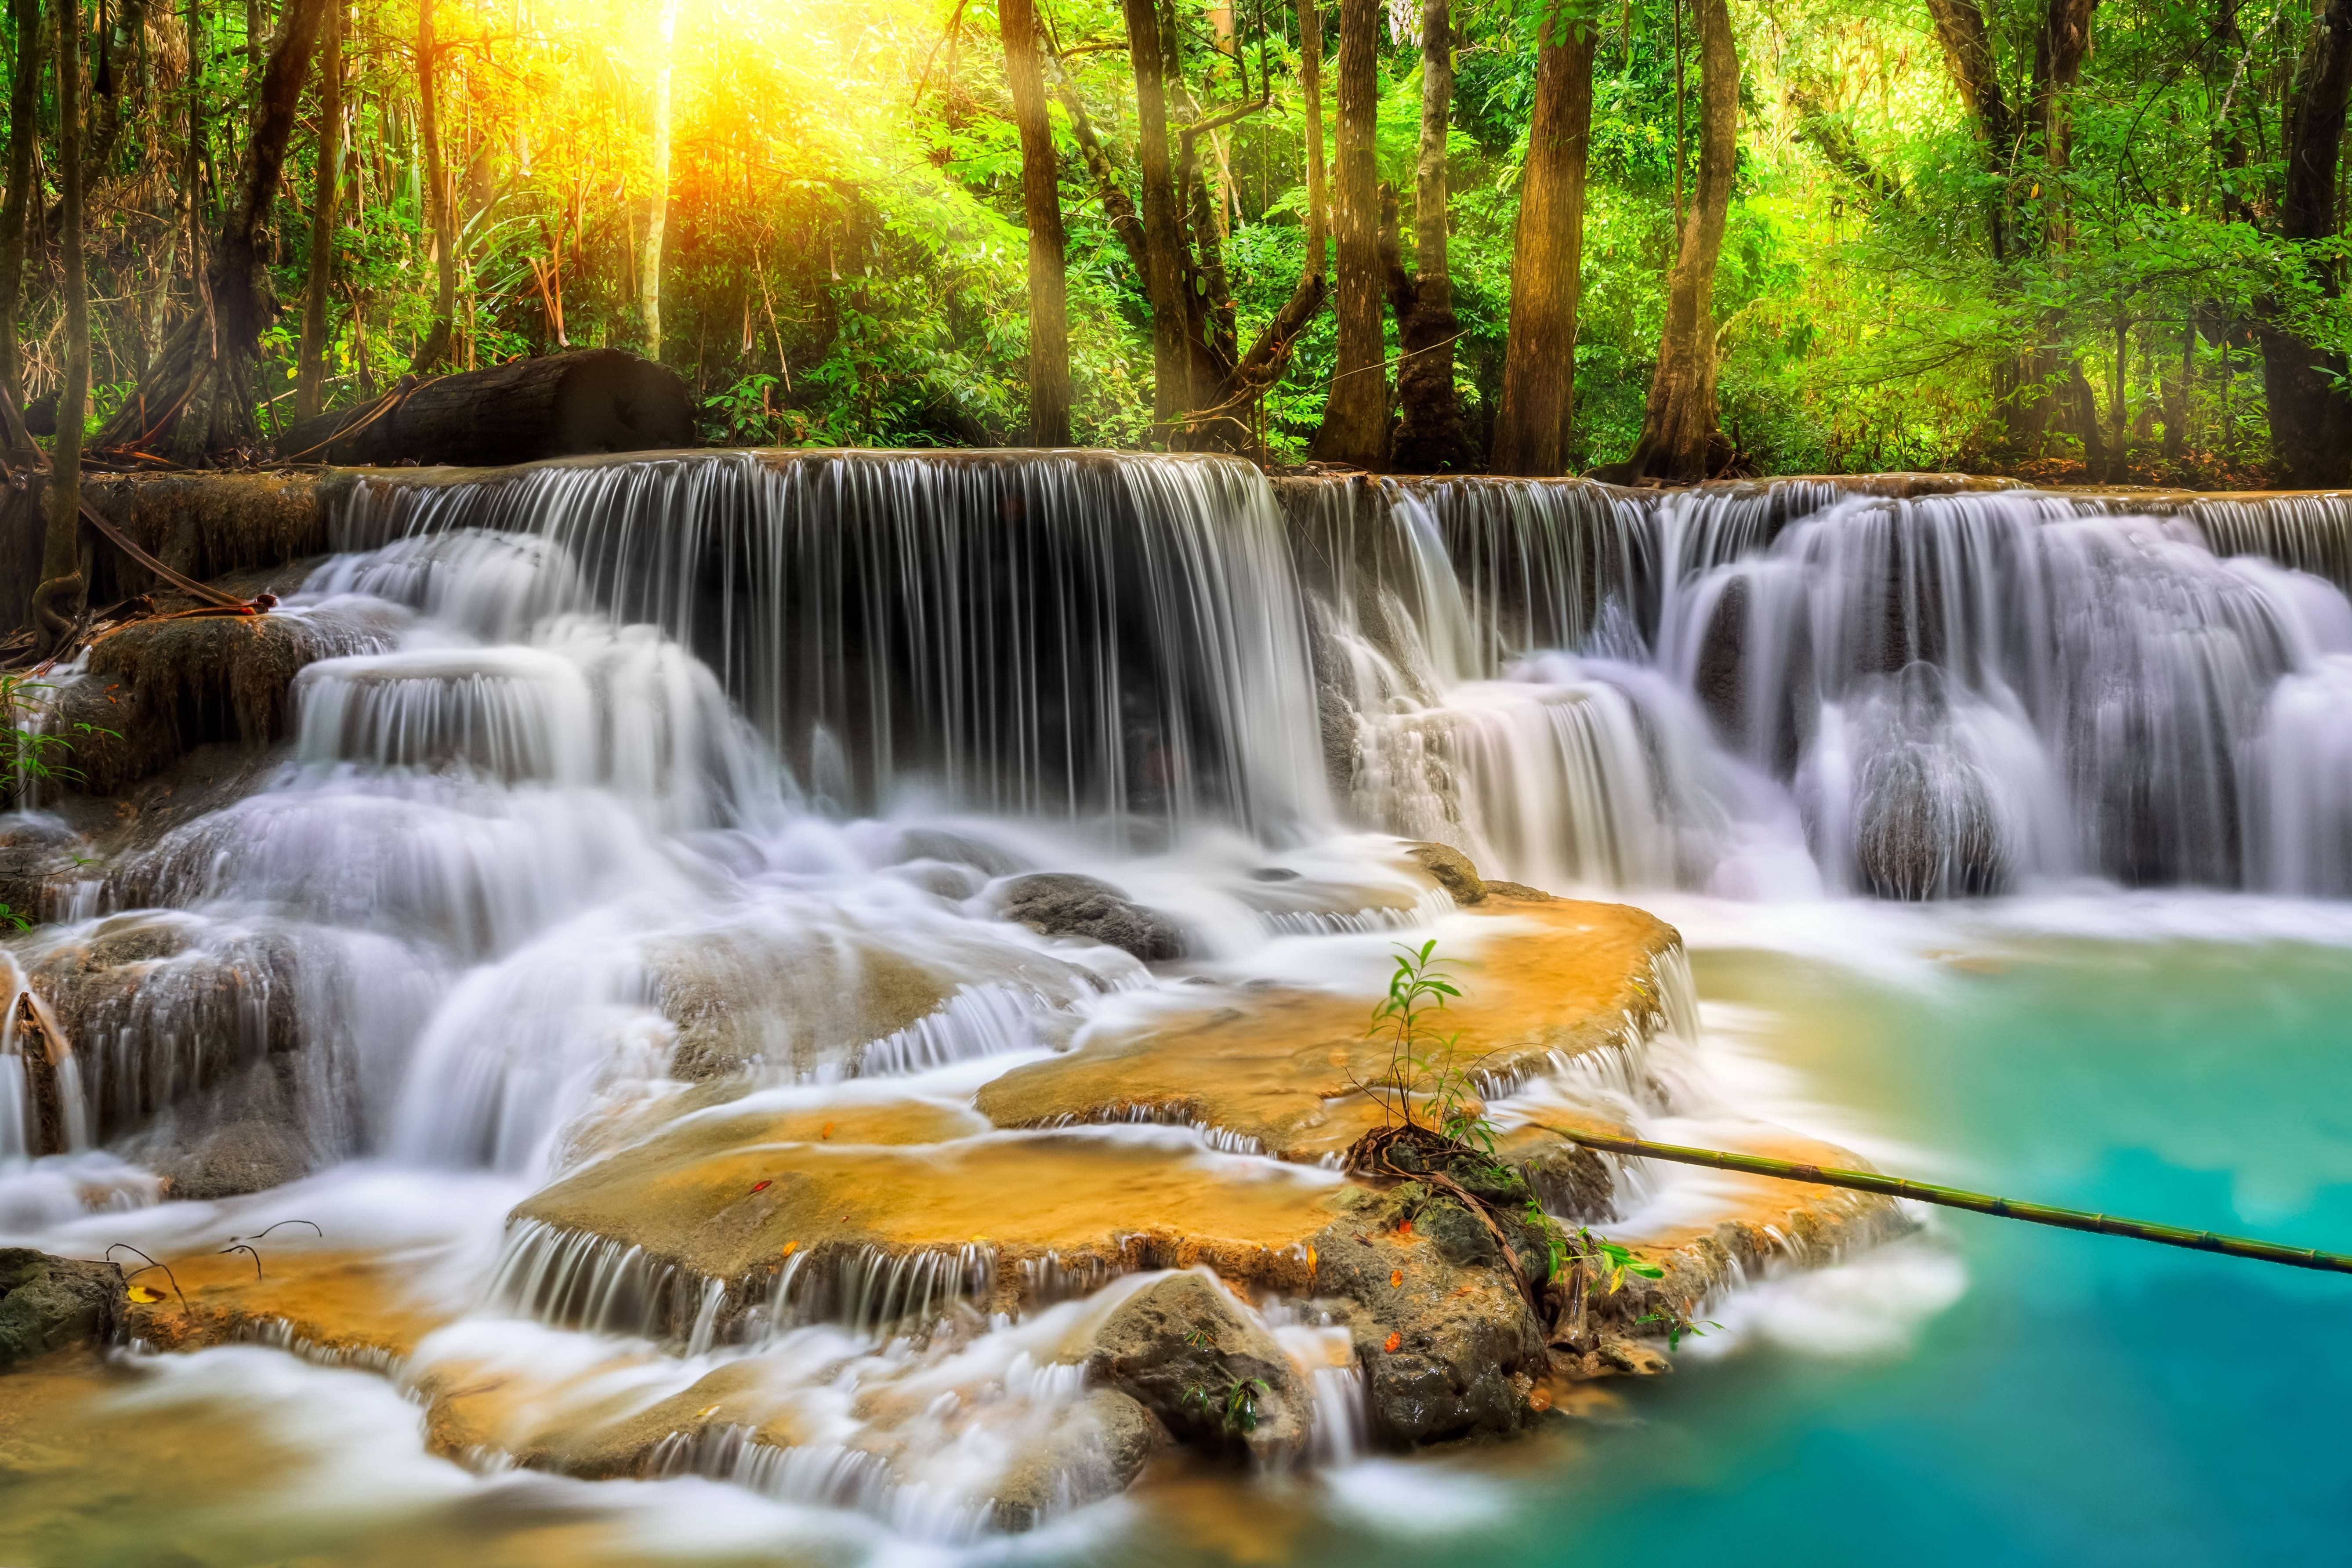 Natural Waterfall Wallpapers High Quality Resolution For Free Wallpaper Waterfall Wallpaper Natural Waterfalls Thailand Waterfall